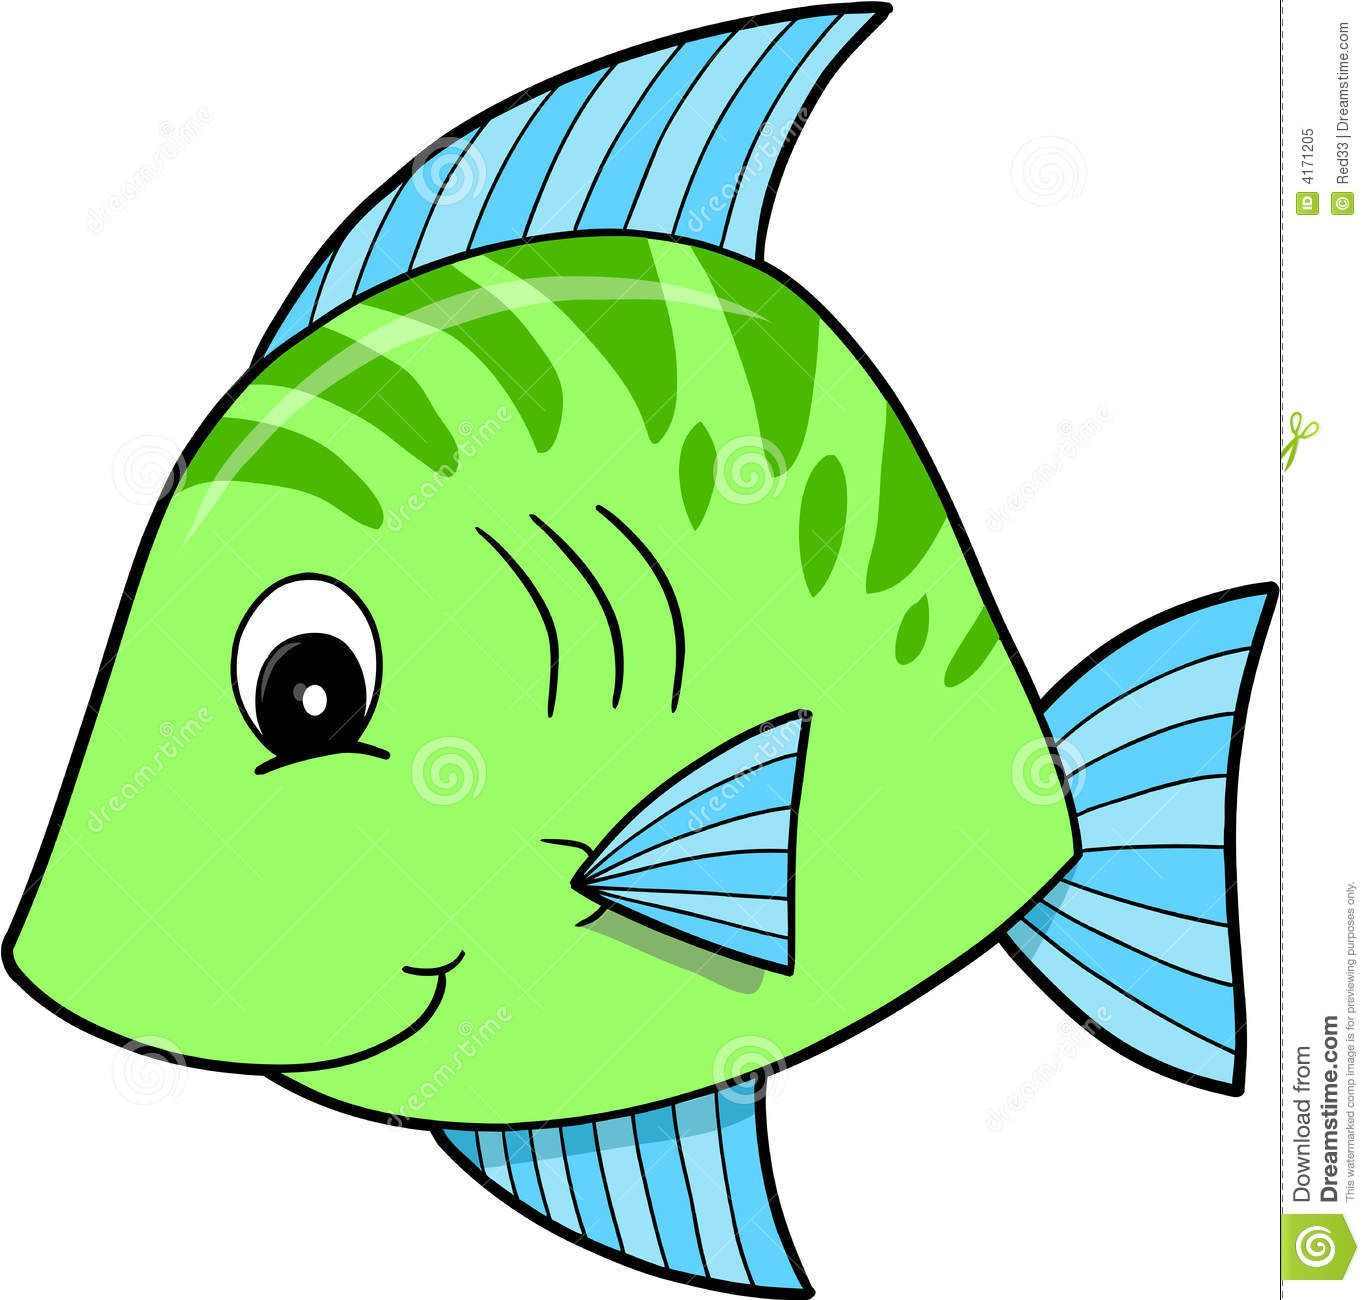 Fishing clipart fishing competition. Cute green fish vector